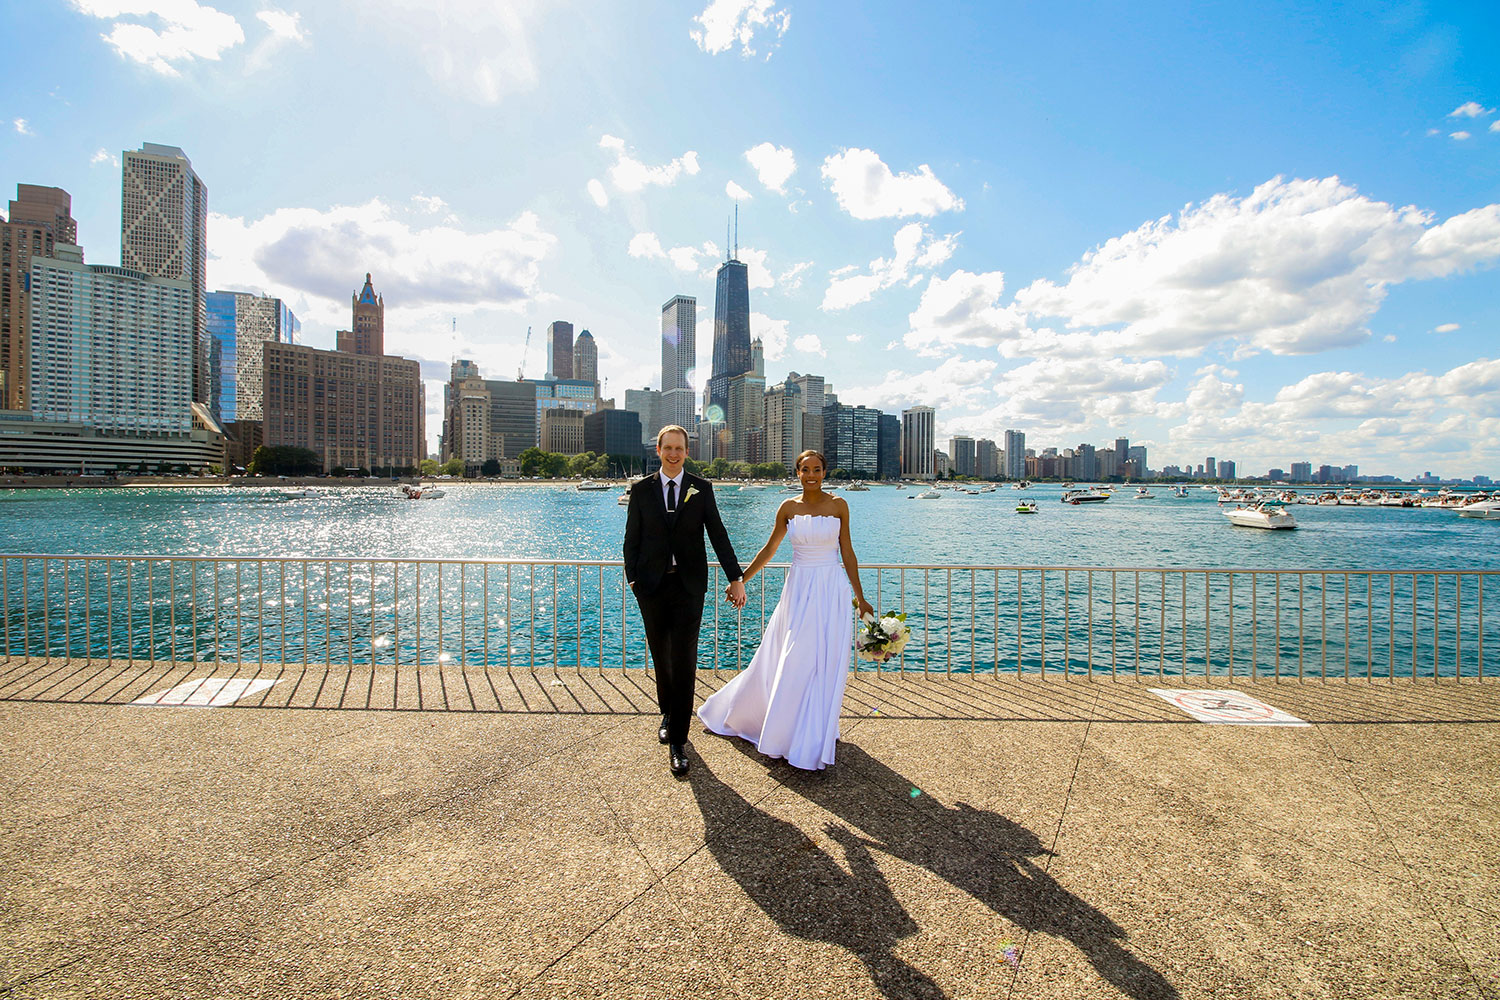 Wedding_Chicago_Sarah_09.JPG